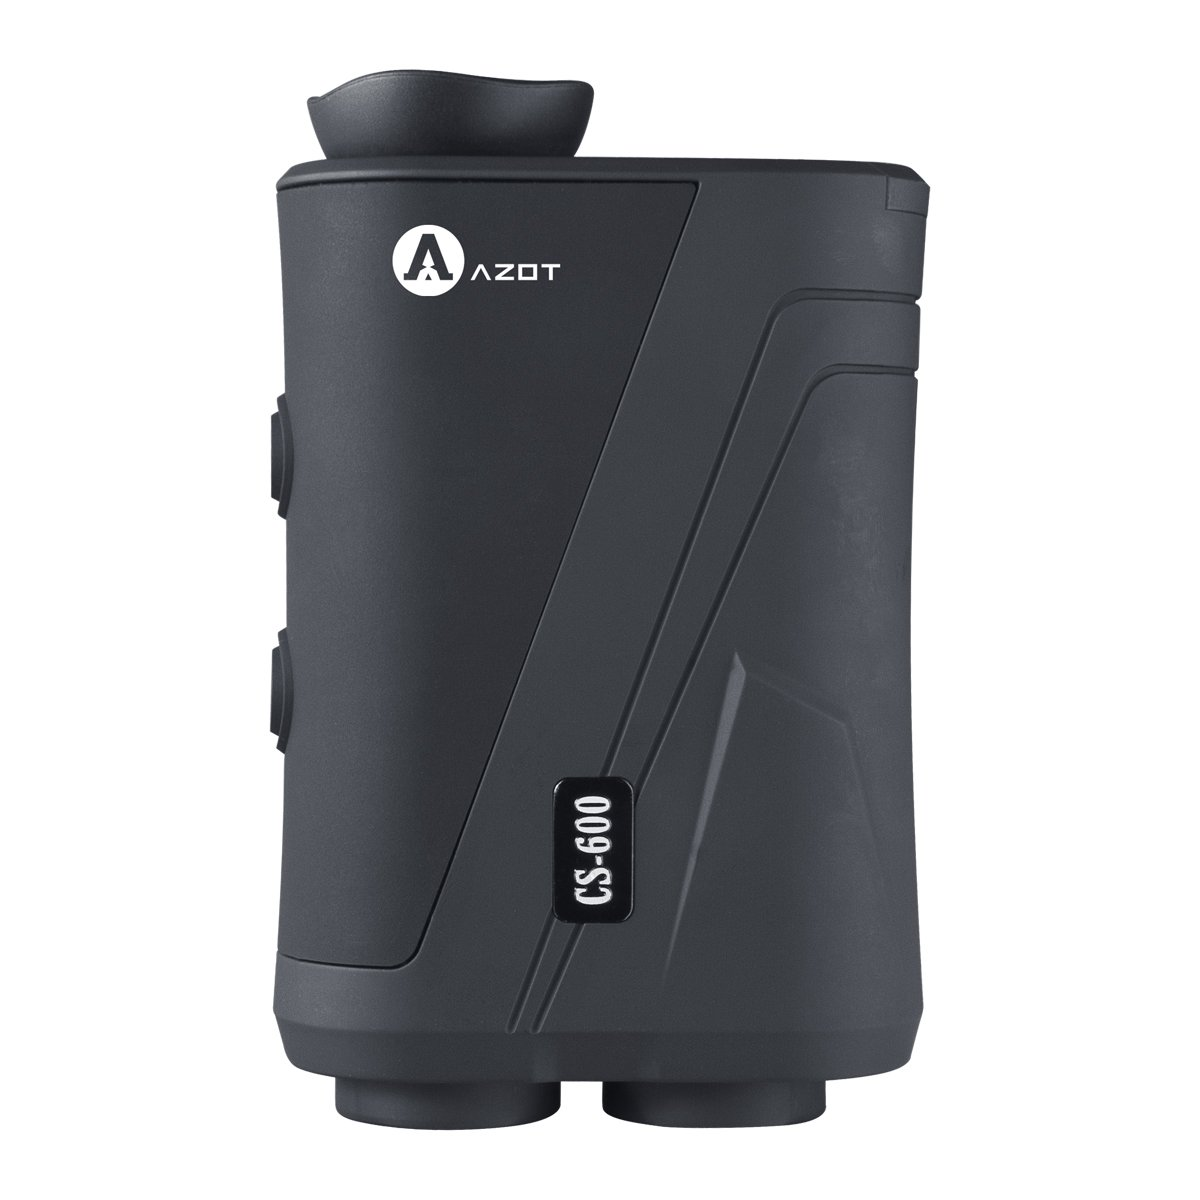 AZOT CS-600 Golf rangefinder Laser Range Finder with waterproof function Measure ranging and speed Free Battery by AZOT (Image #3)